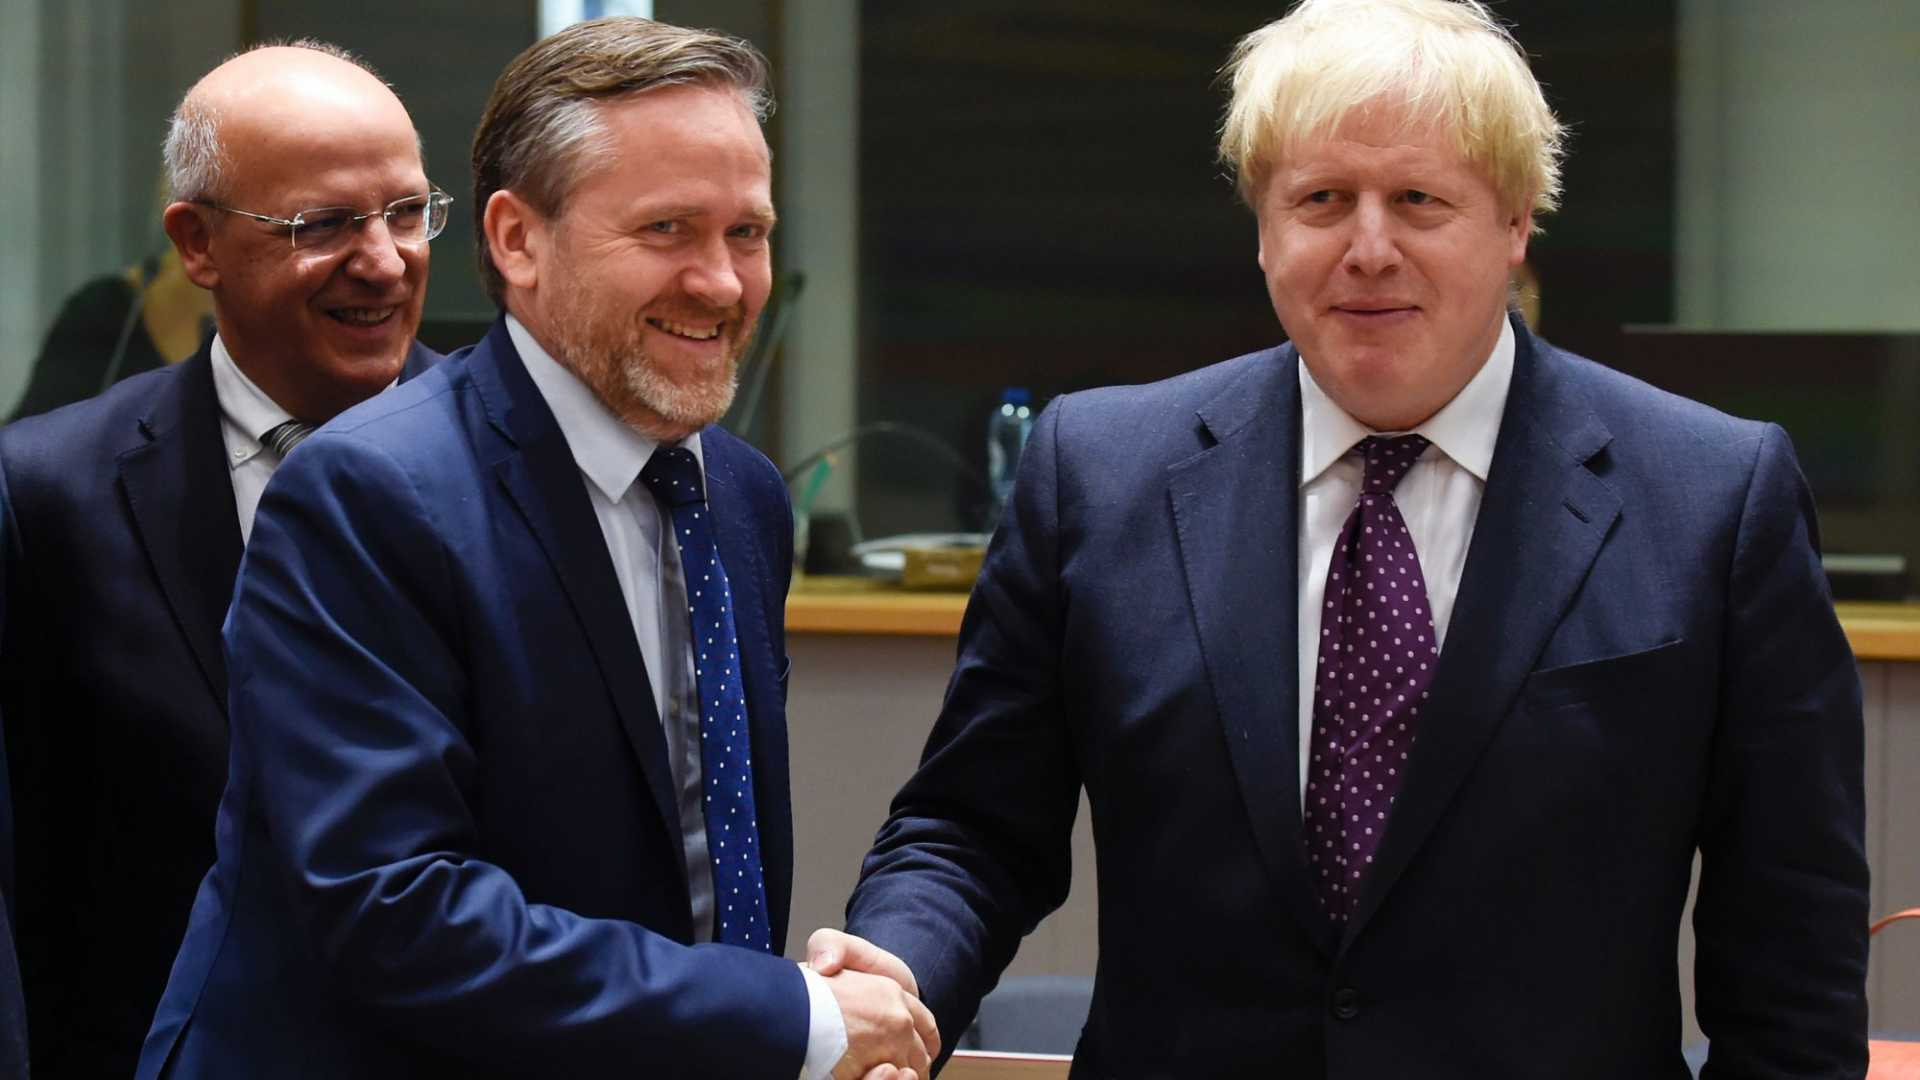 (Danish Foreign Affairs Minister Anders Samuelsen, L, and British Foreign Affairs Minister Boris Johnson, R.) Denmark recently announced the creation of a 'digital minister' to maintain a favorable relationship with tech companies.